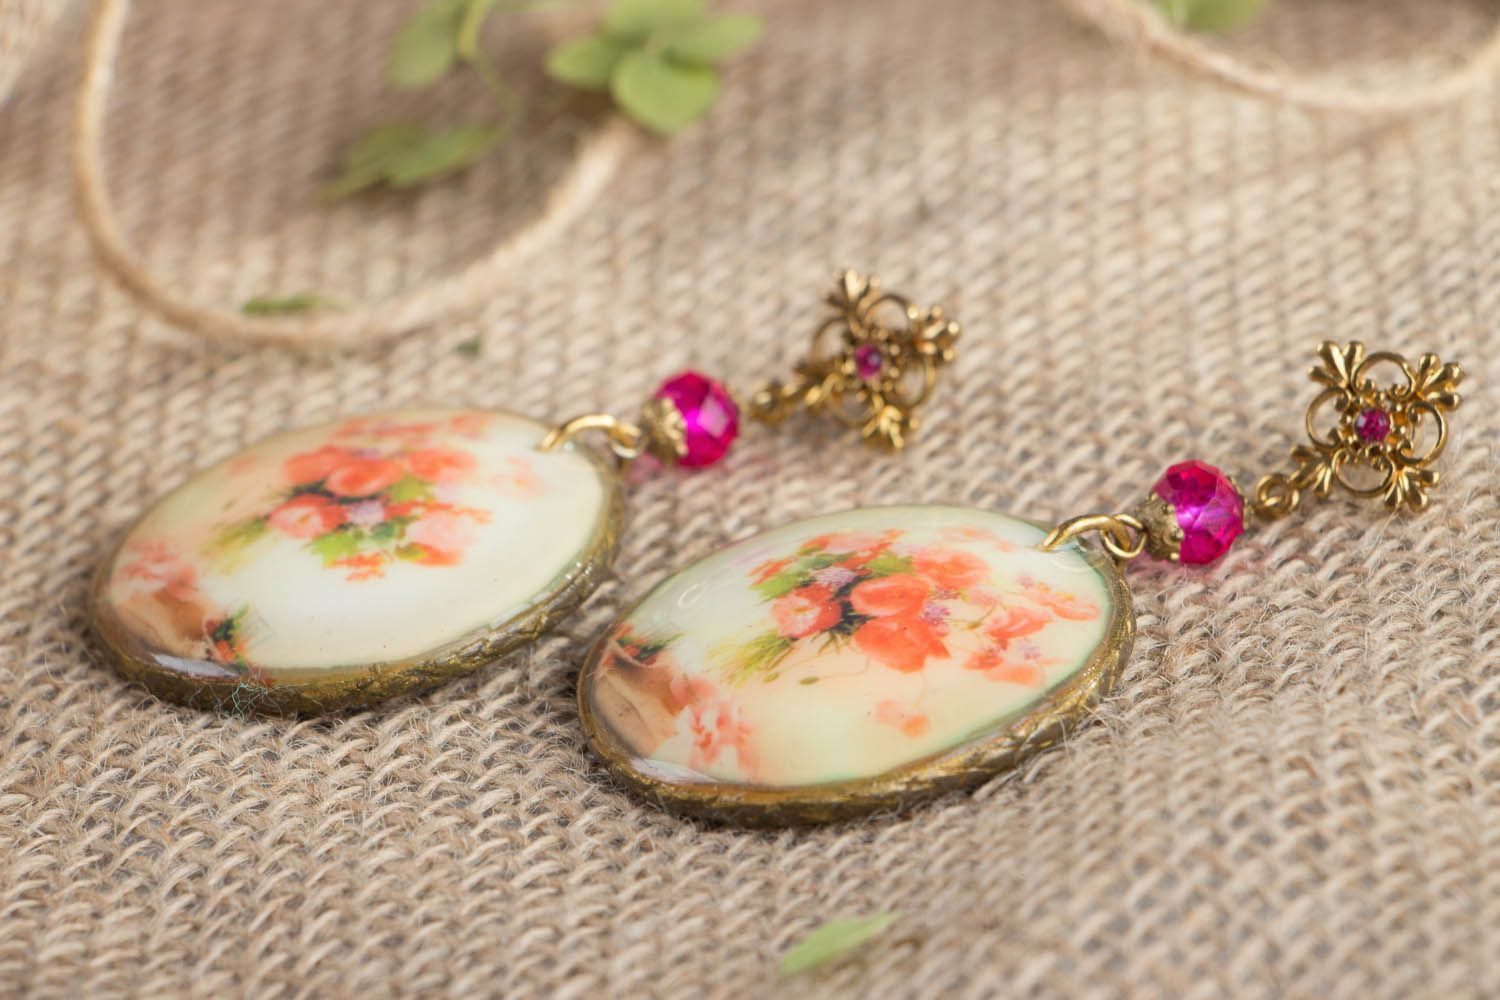 Vintage earrings made using decoupage technique photo 2